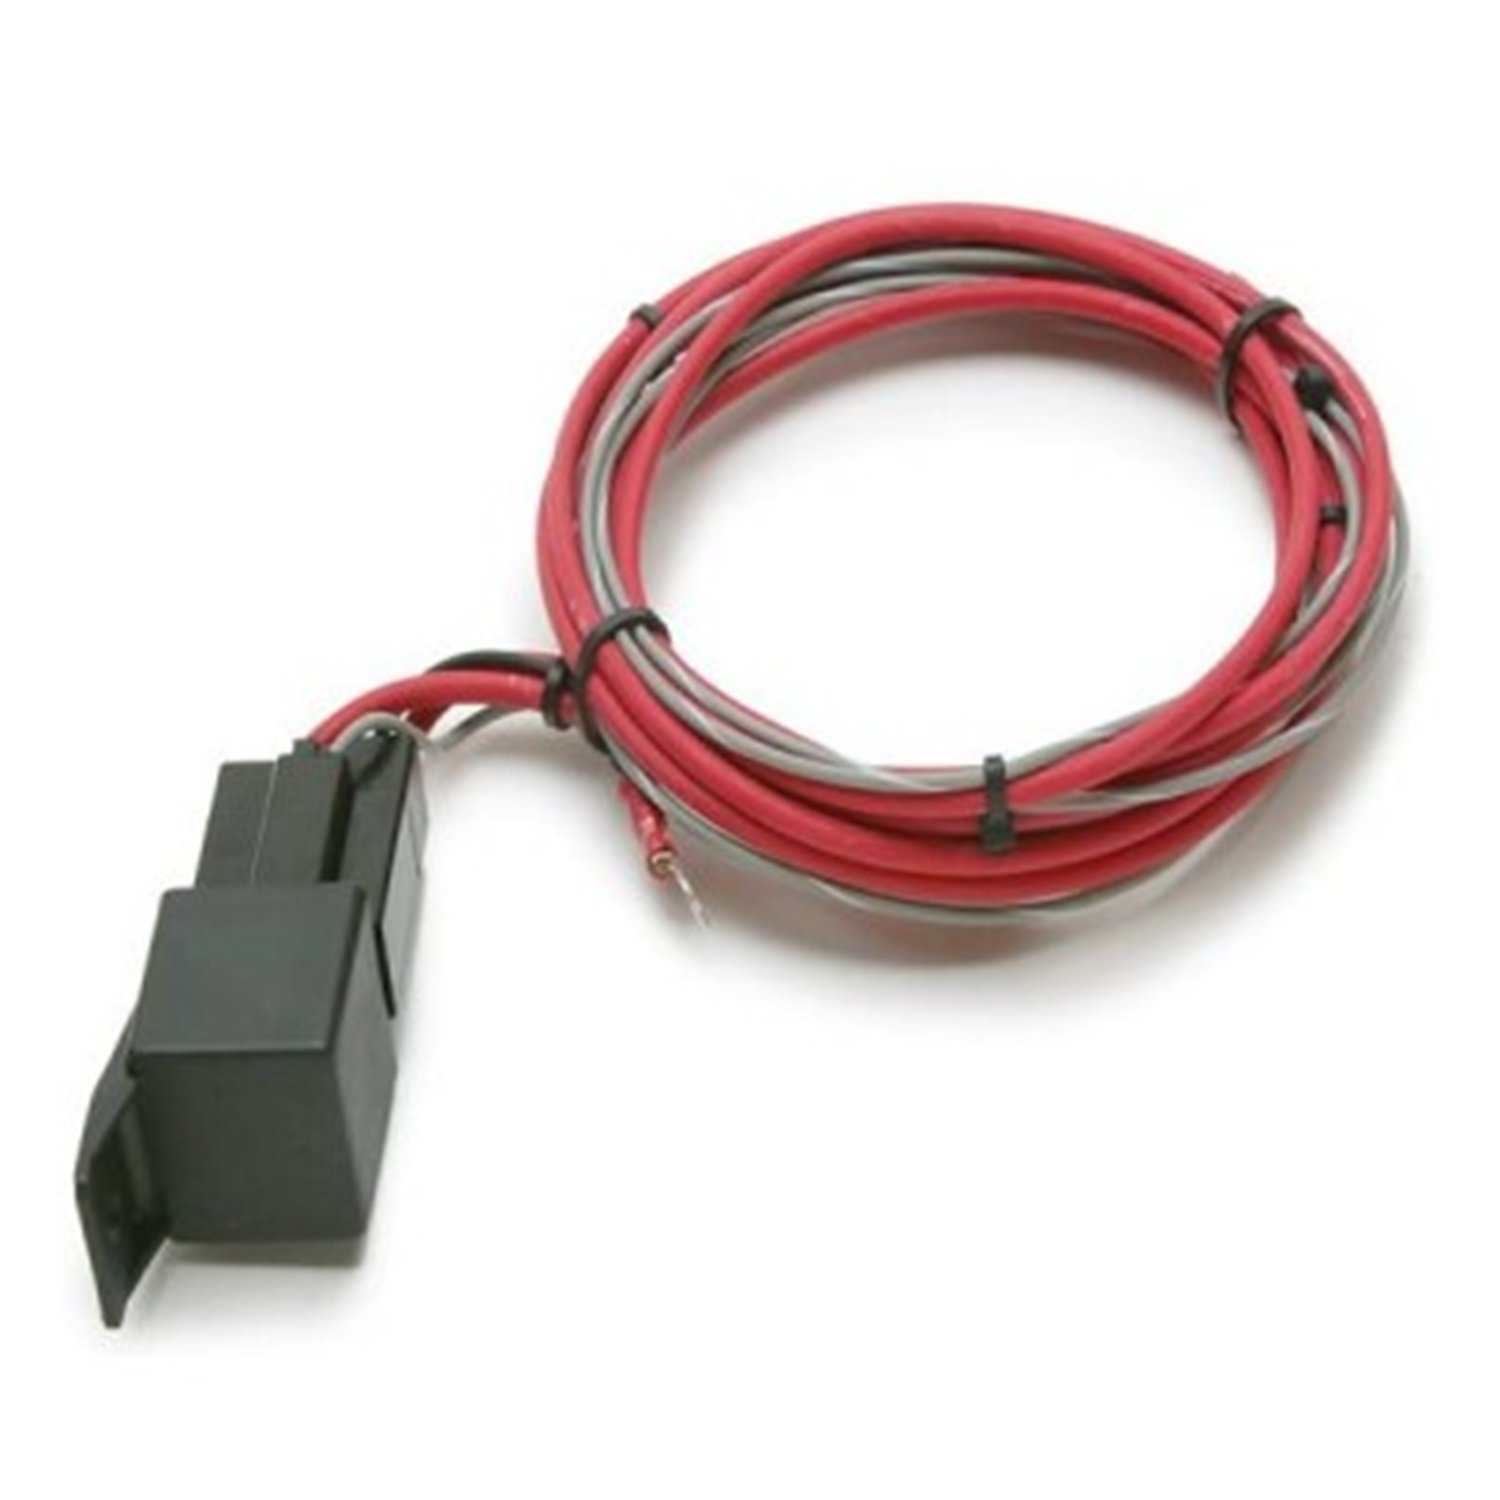 61Wk1U0jD0L._SL1500_ amazon com painless 30100 (70 amp) fan relay kit automotive painless wiring harness rebate at gsmx.co